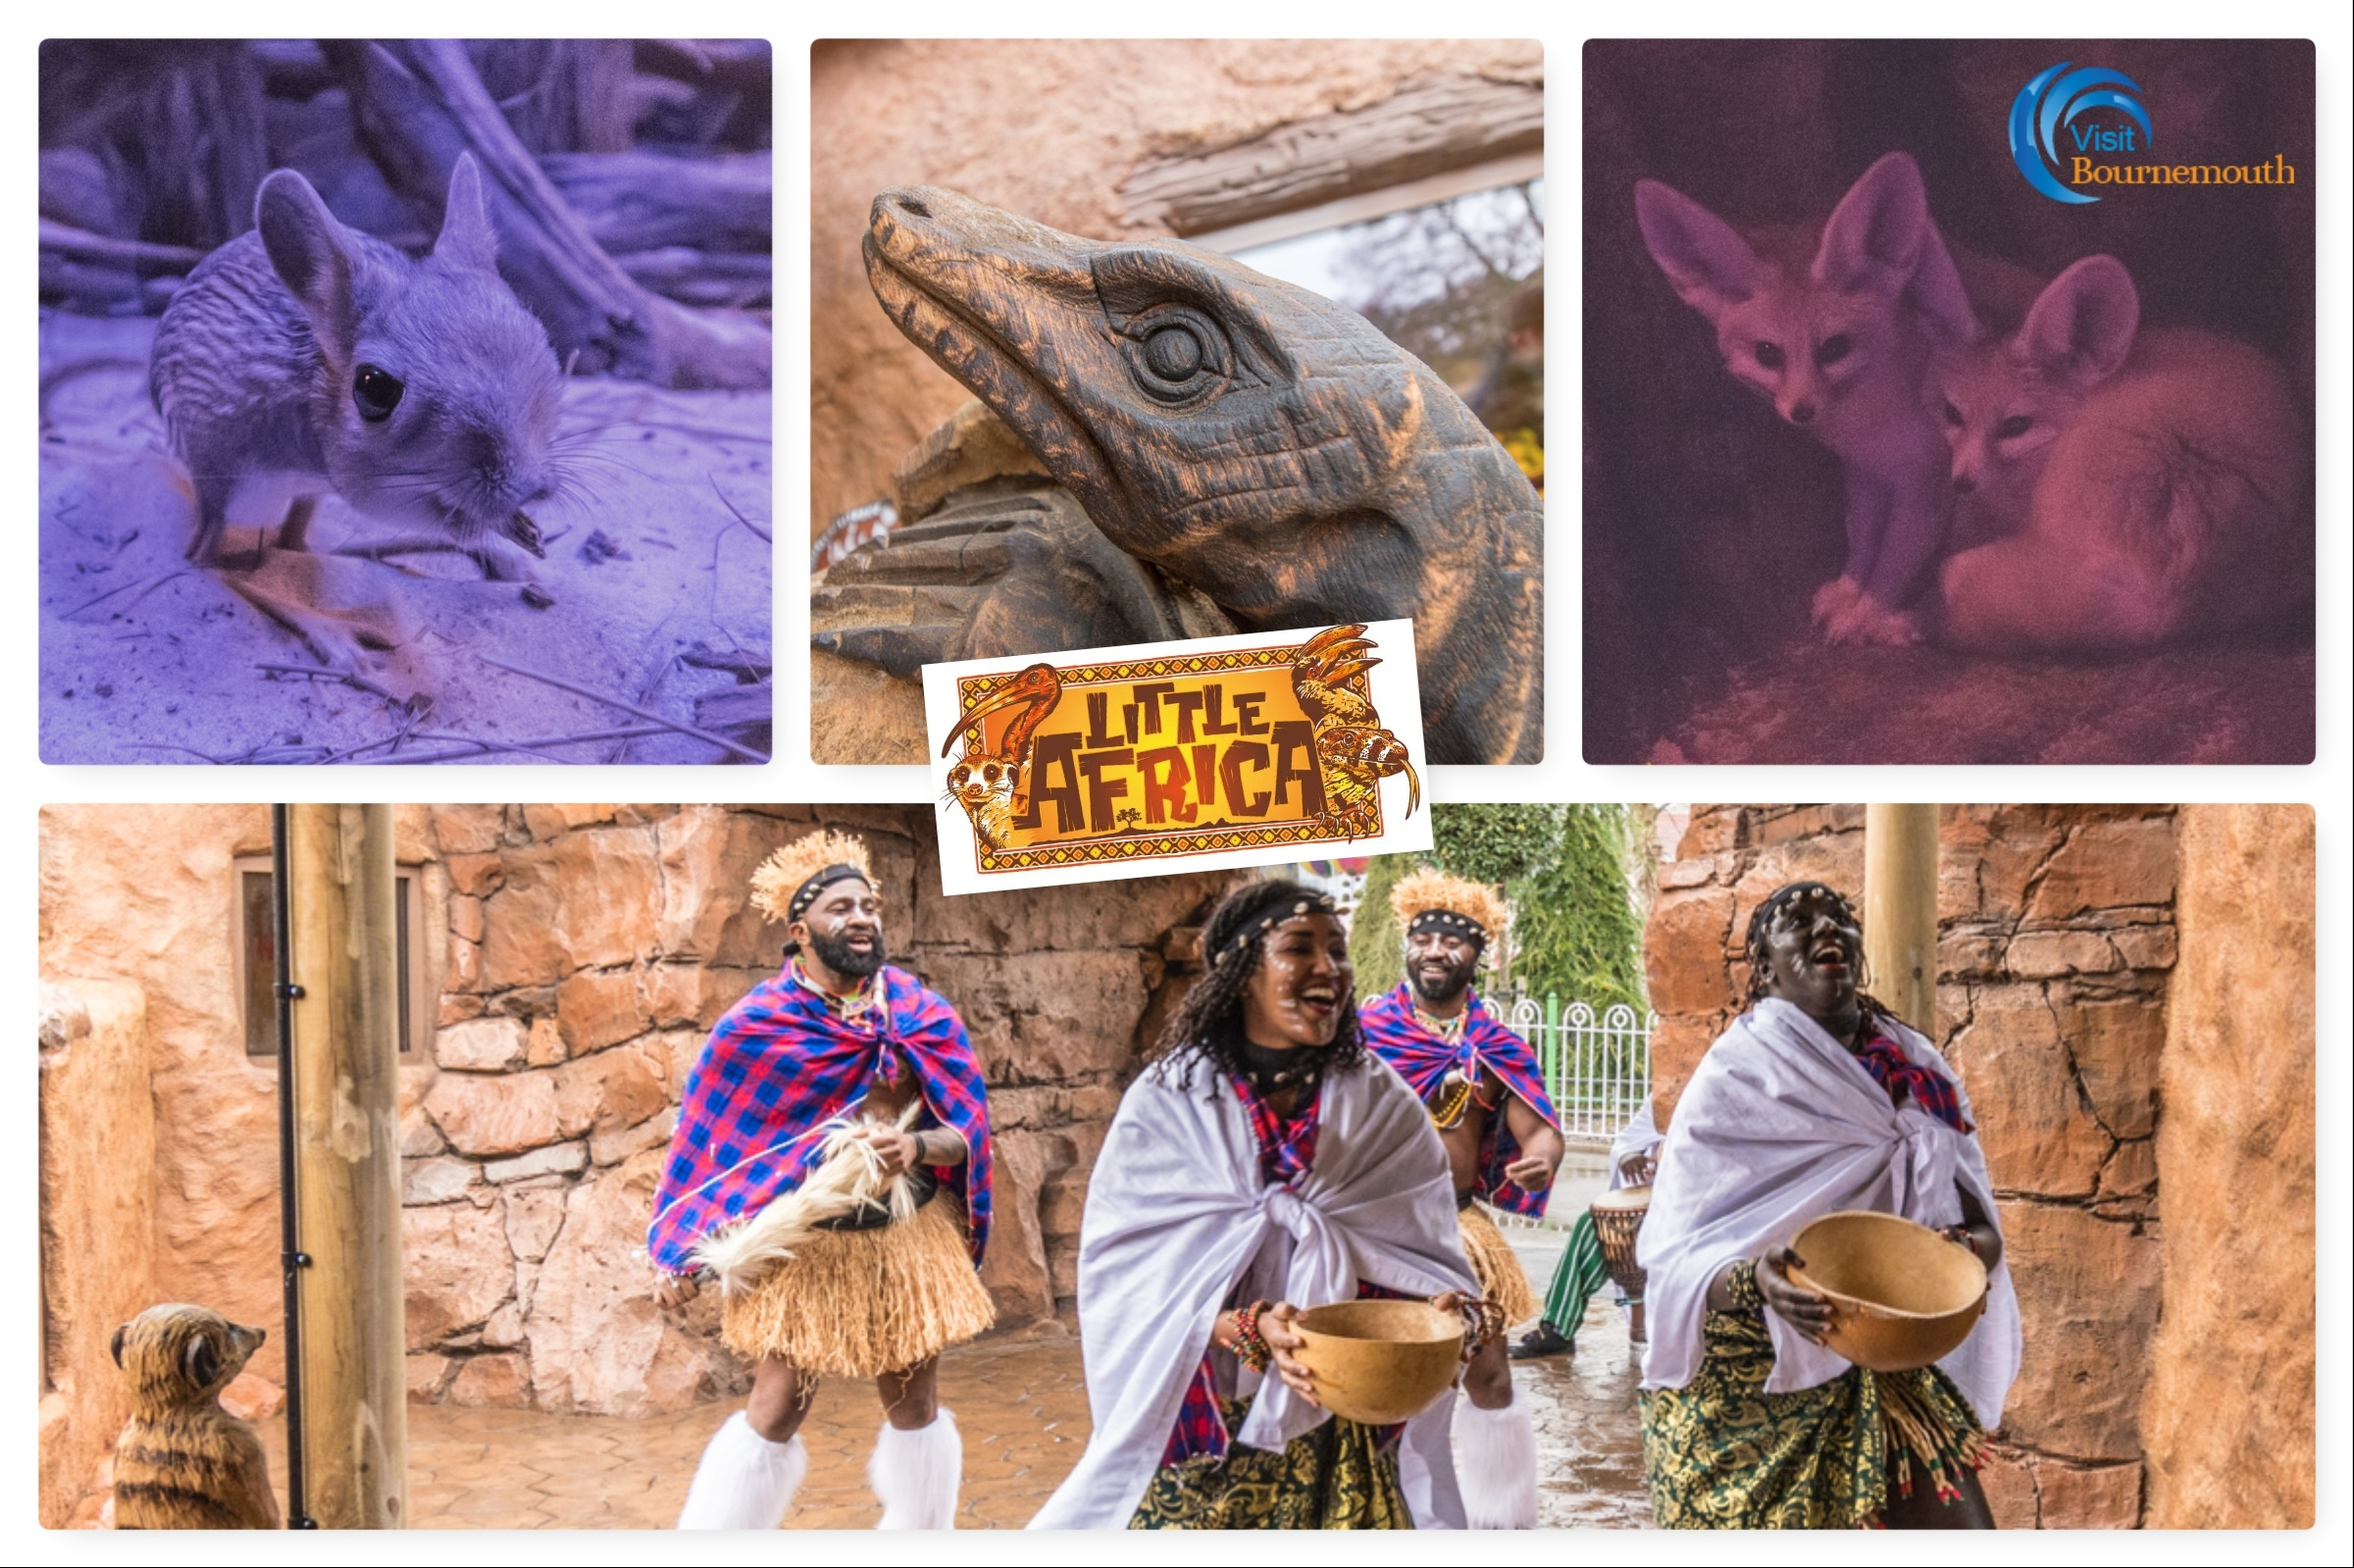 Discover Little Africa at Paultons Park - 40 new photos